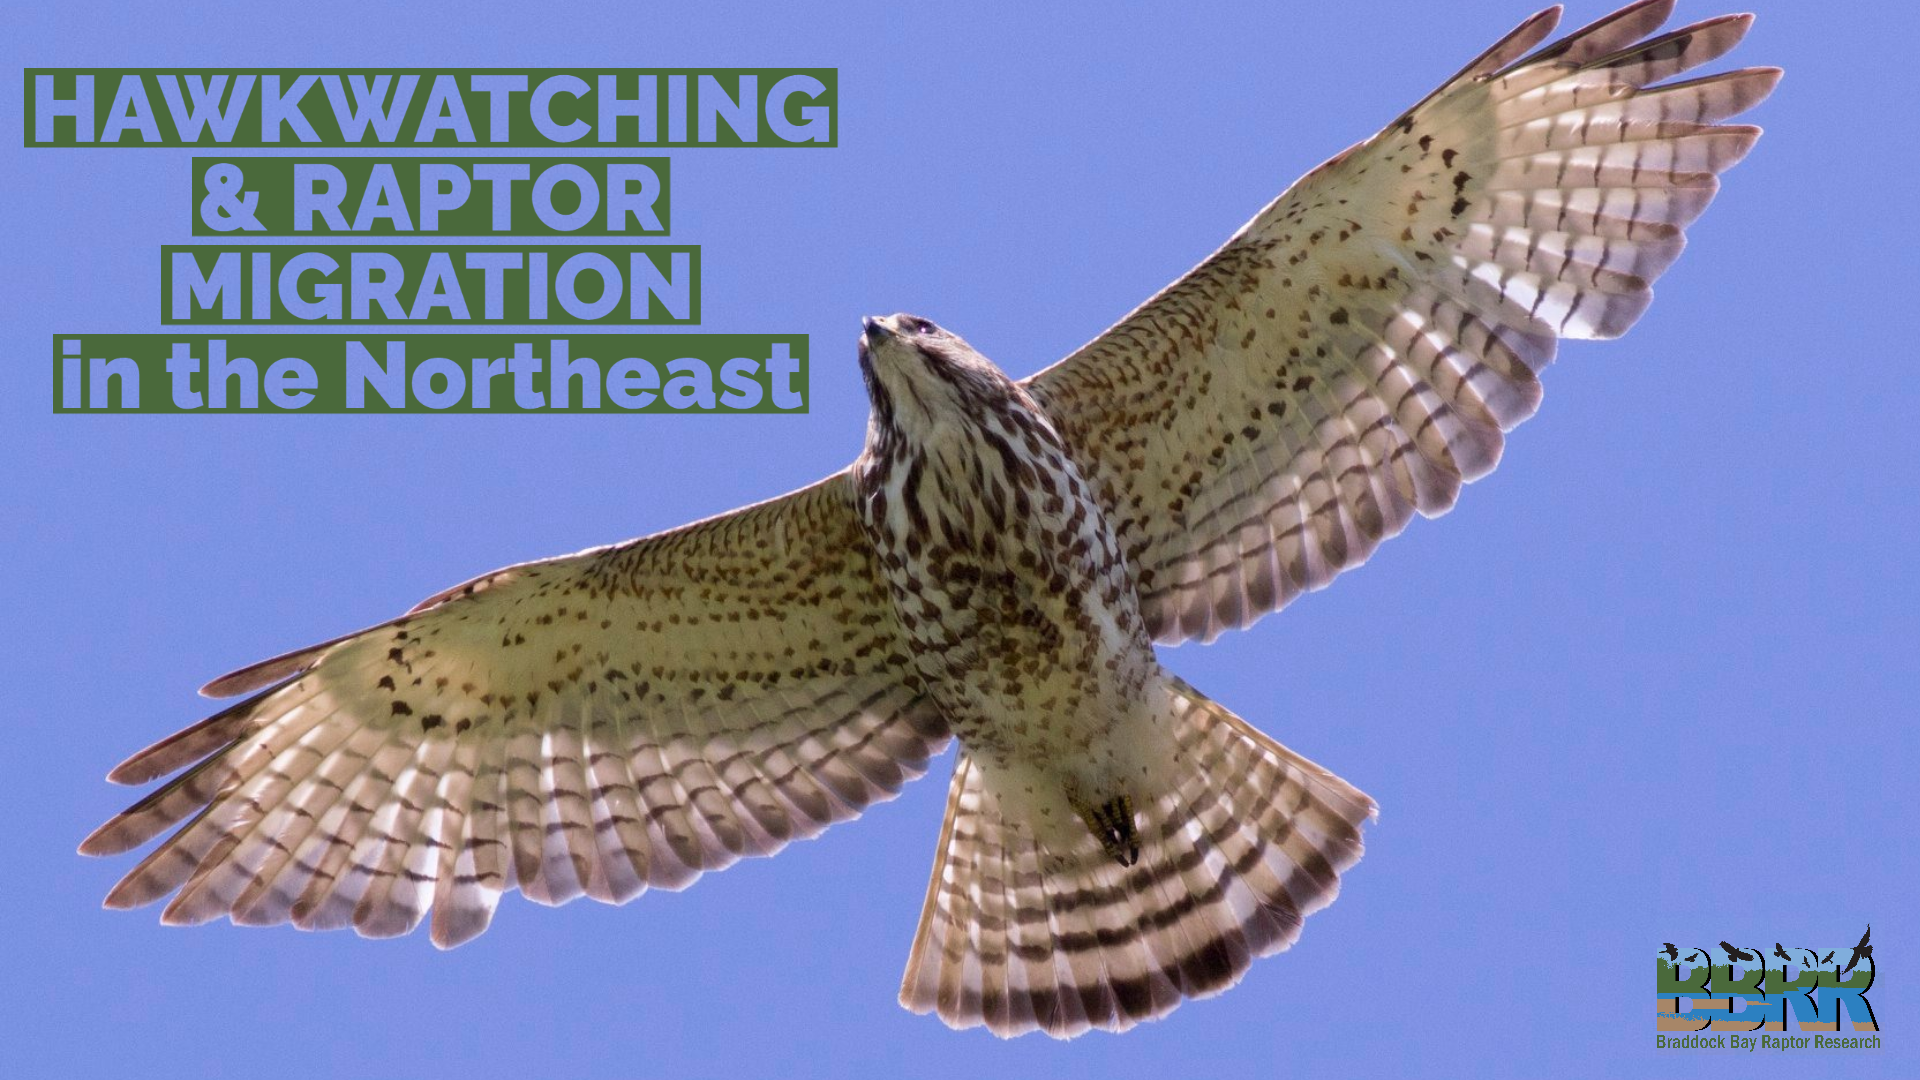 Hawkwatching and Migration in the NE